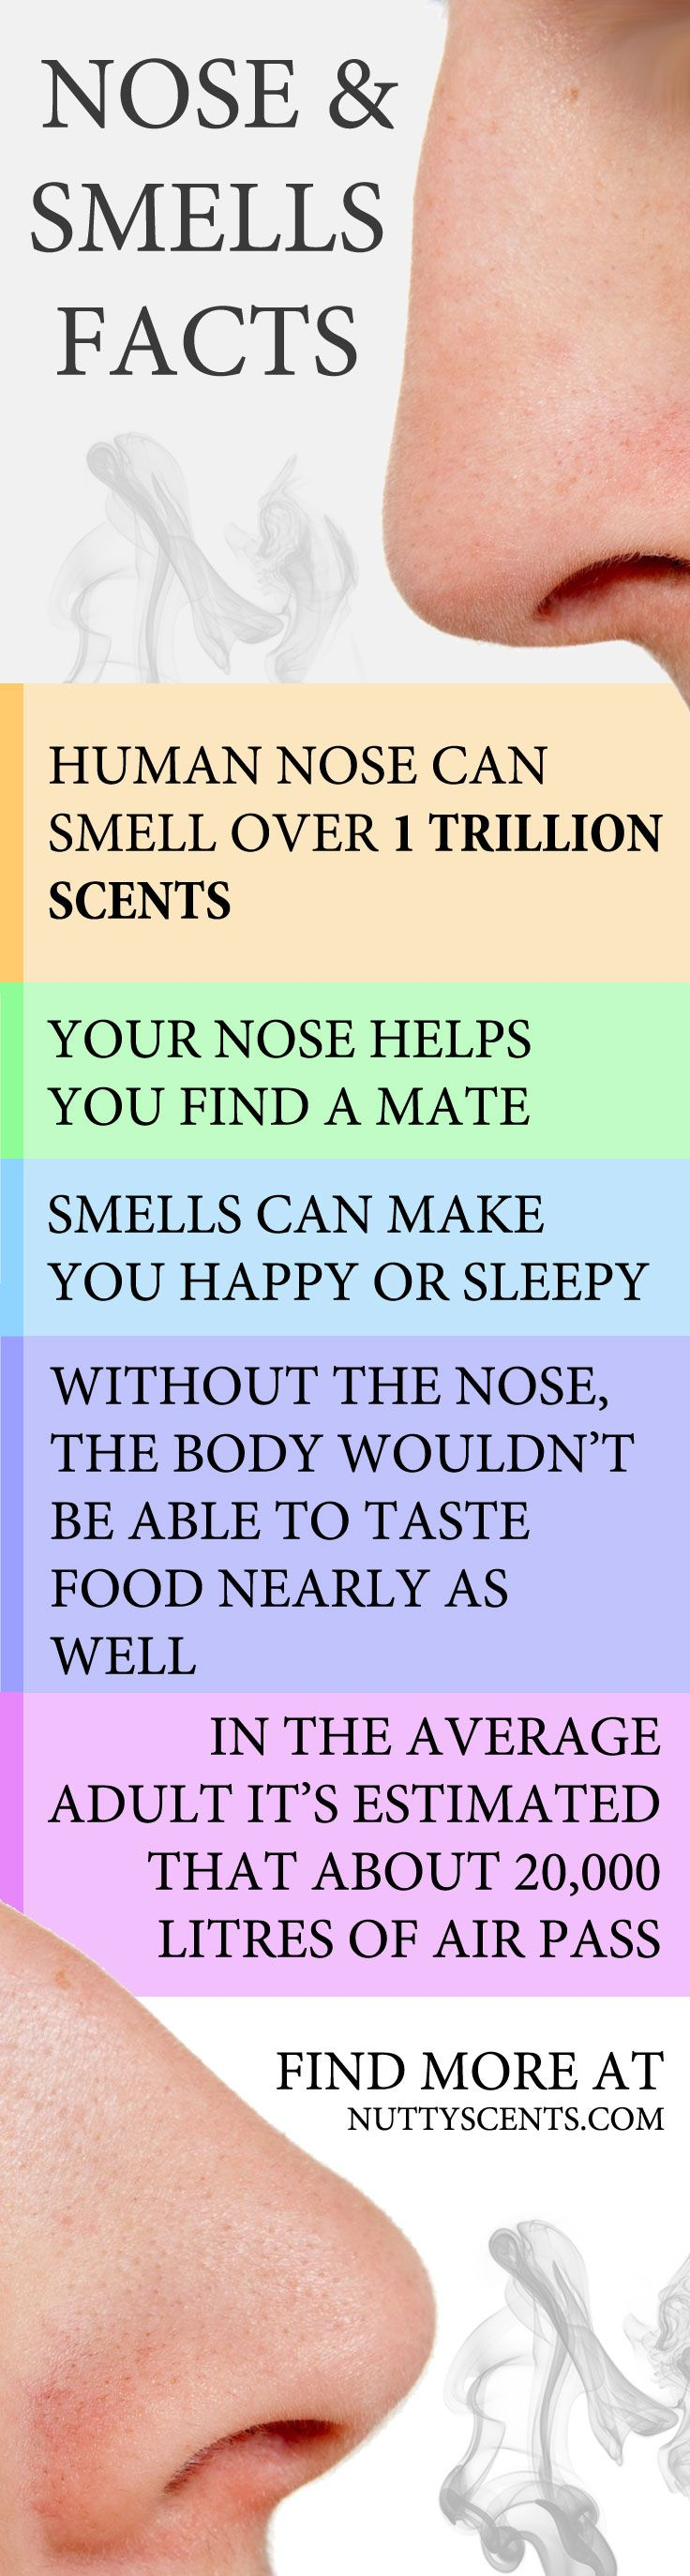 Fact #1 The human nose can smell over 1 trillion scents, according to researchers.